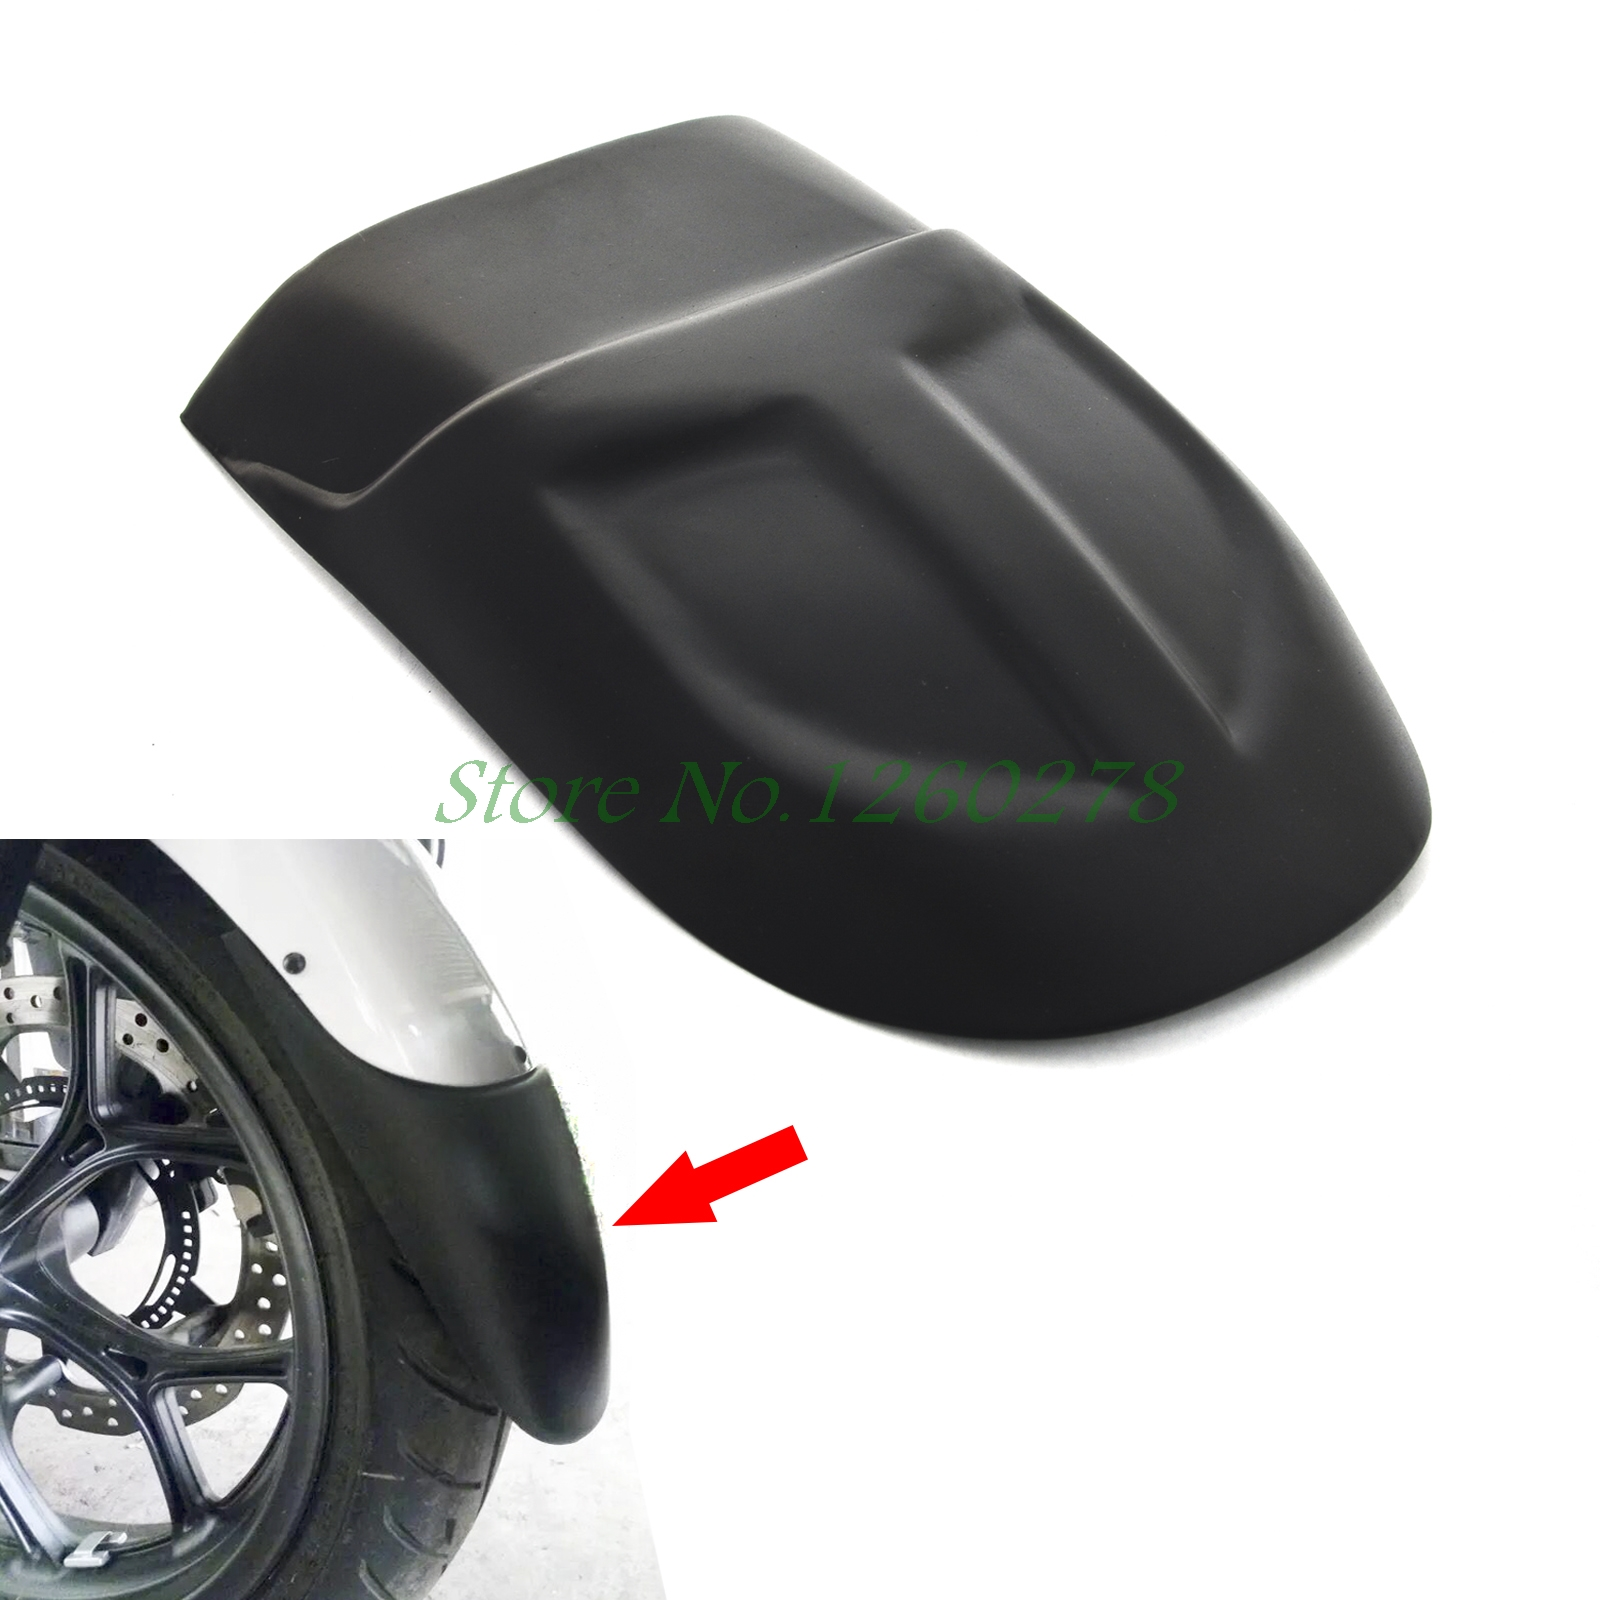 Motorcycle Front Fender Extension Extender For BMW F700GS 2012 2013 2014 2015 motorcycle qj250 j front fender outlet qj250 l changed absolutely original